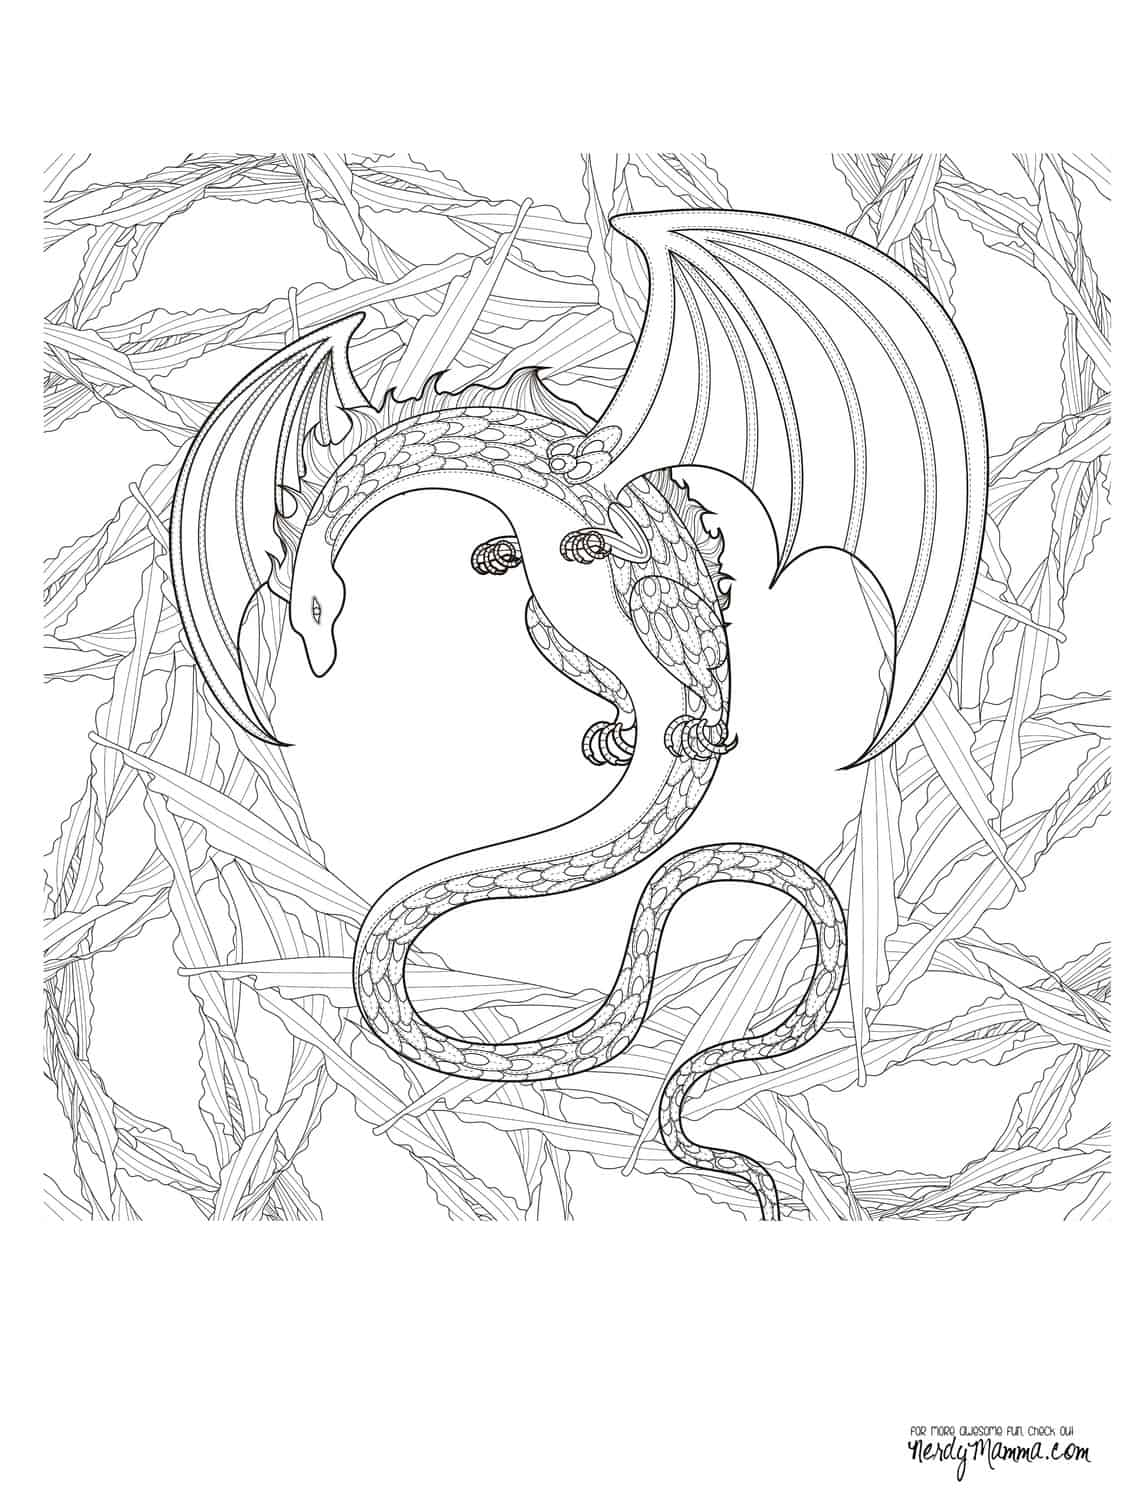 dragon adult coloring pages - photo#10